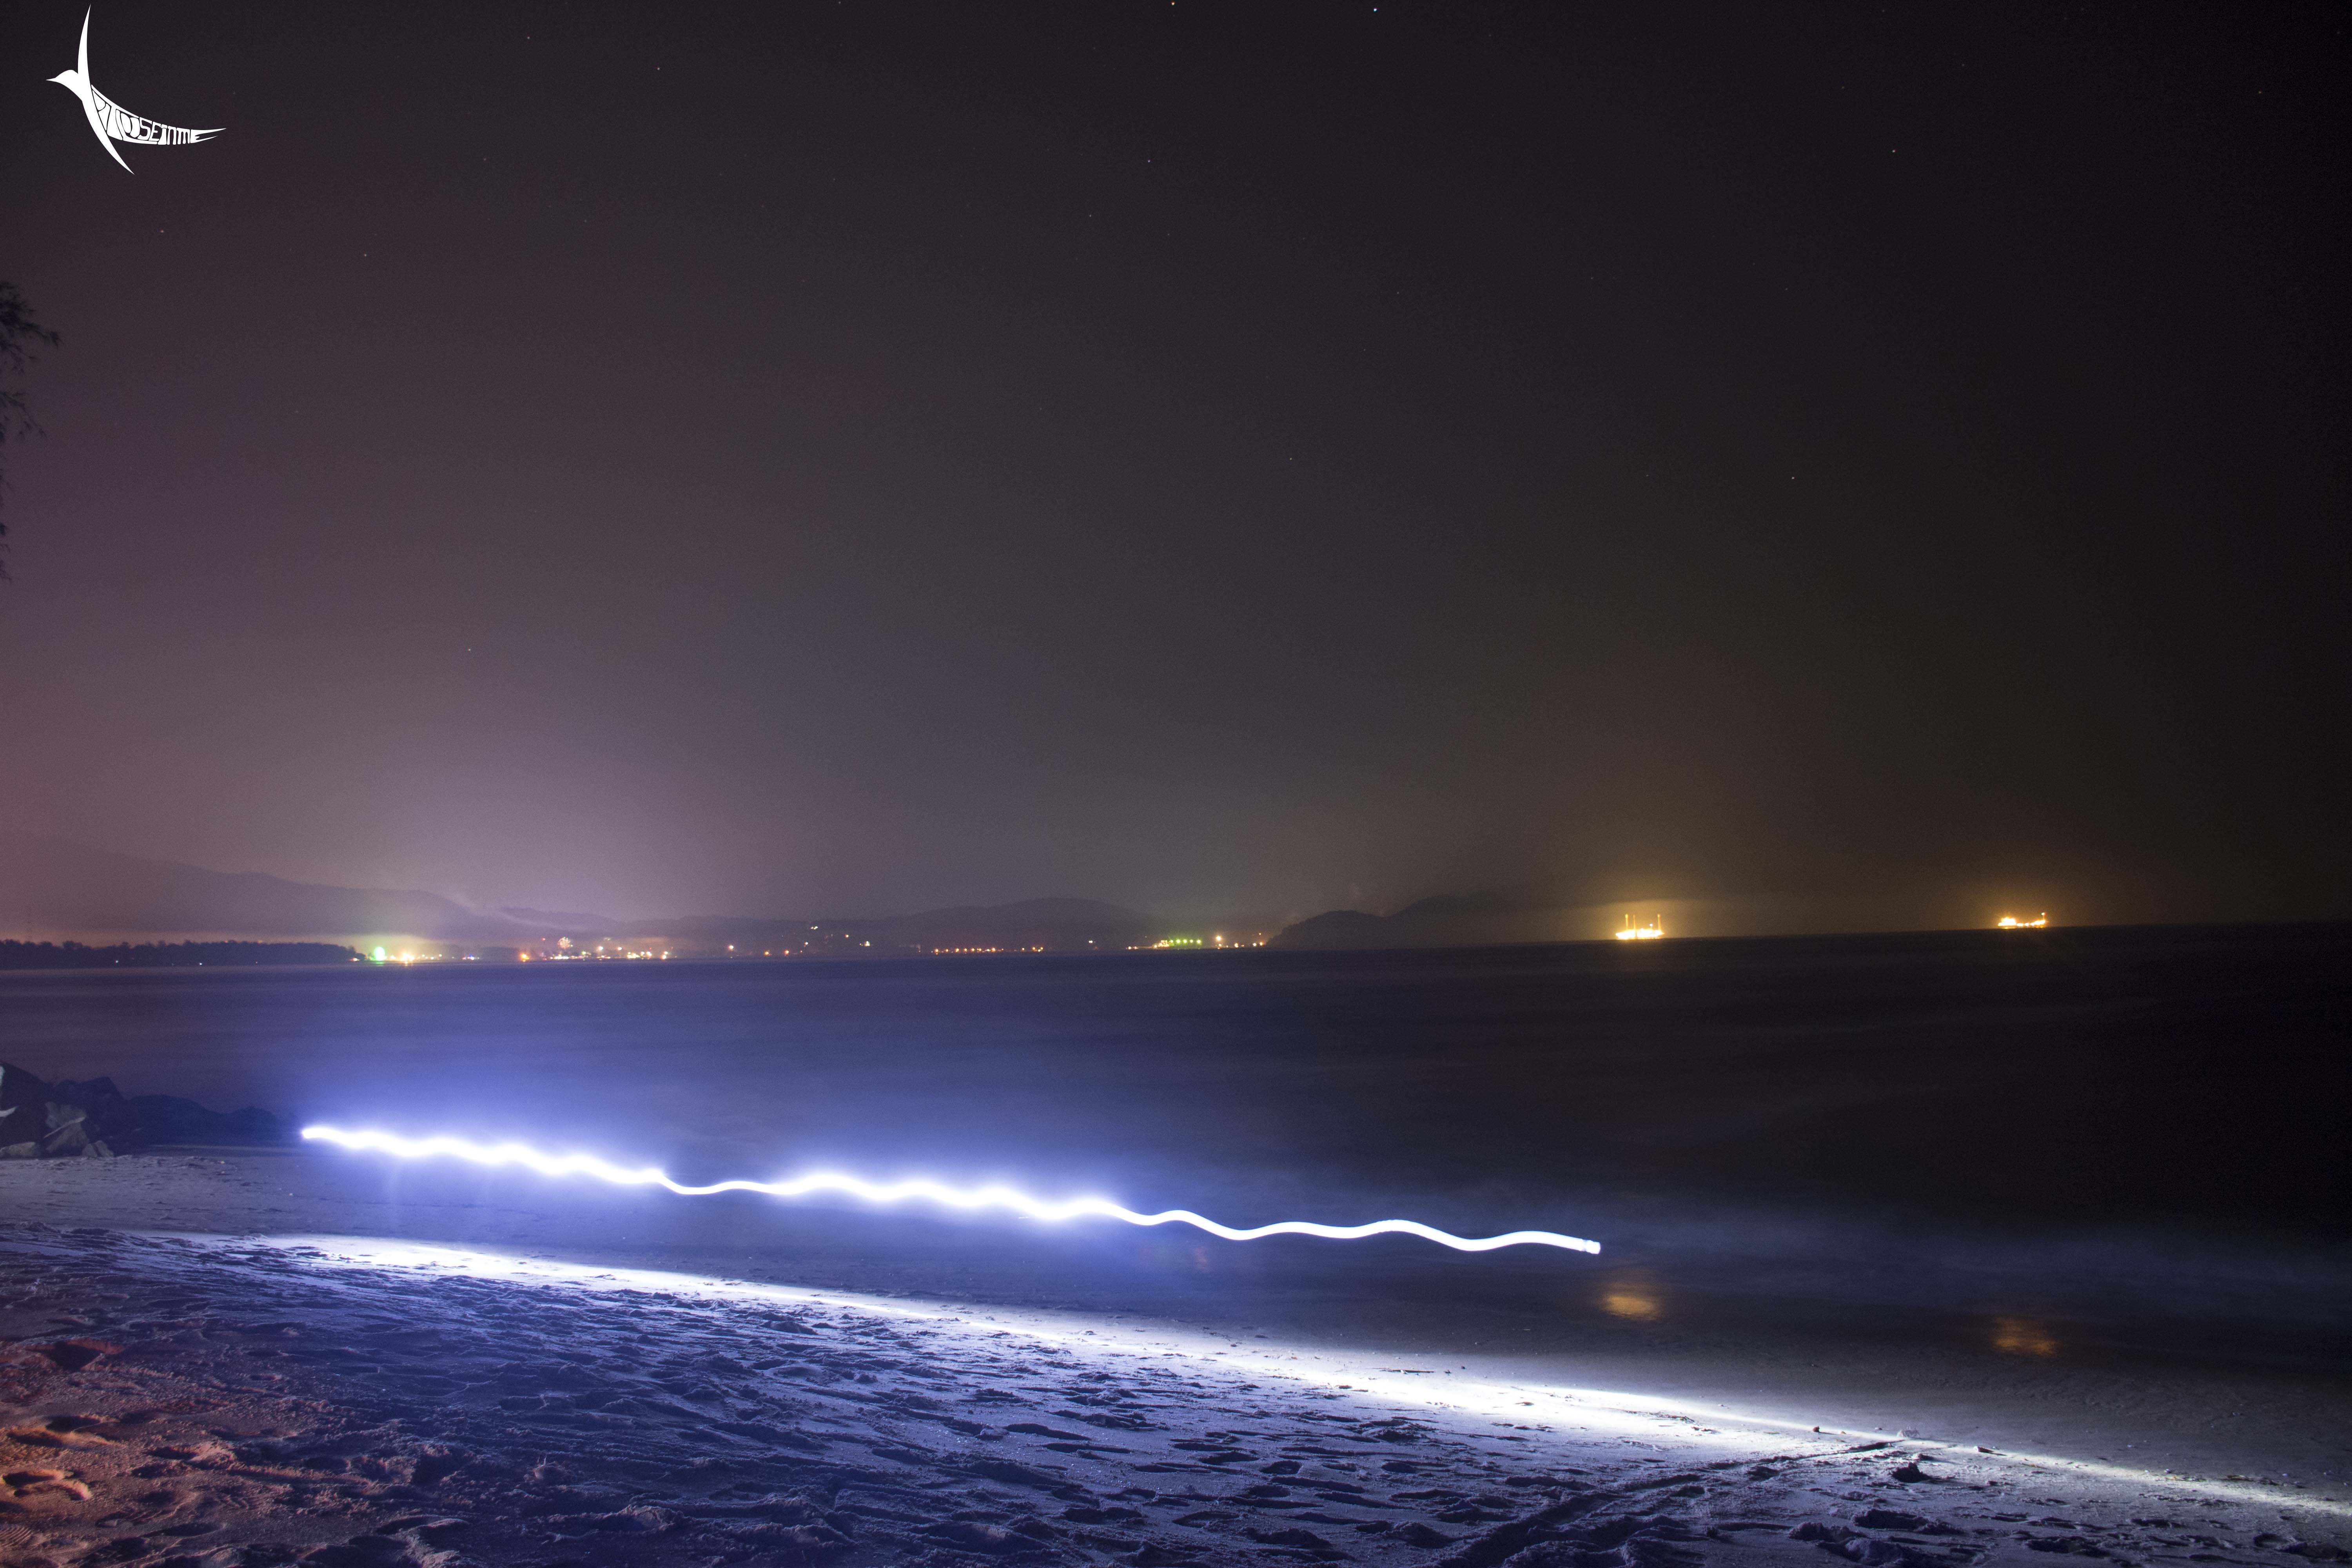 Lights from the Karwar town and the ships and the man who walks with the flash light in hand